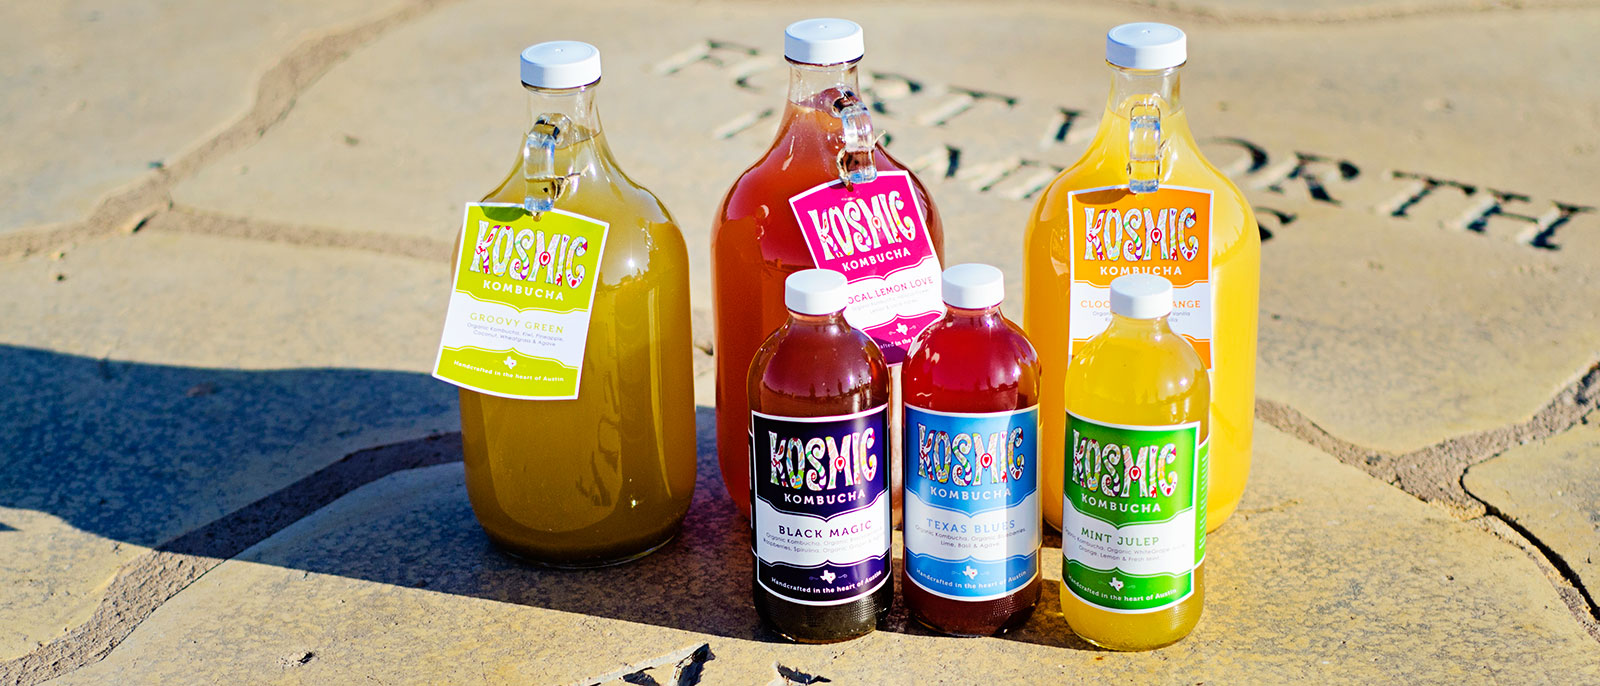 Big and Little Kosmic Kombucha Bottles